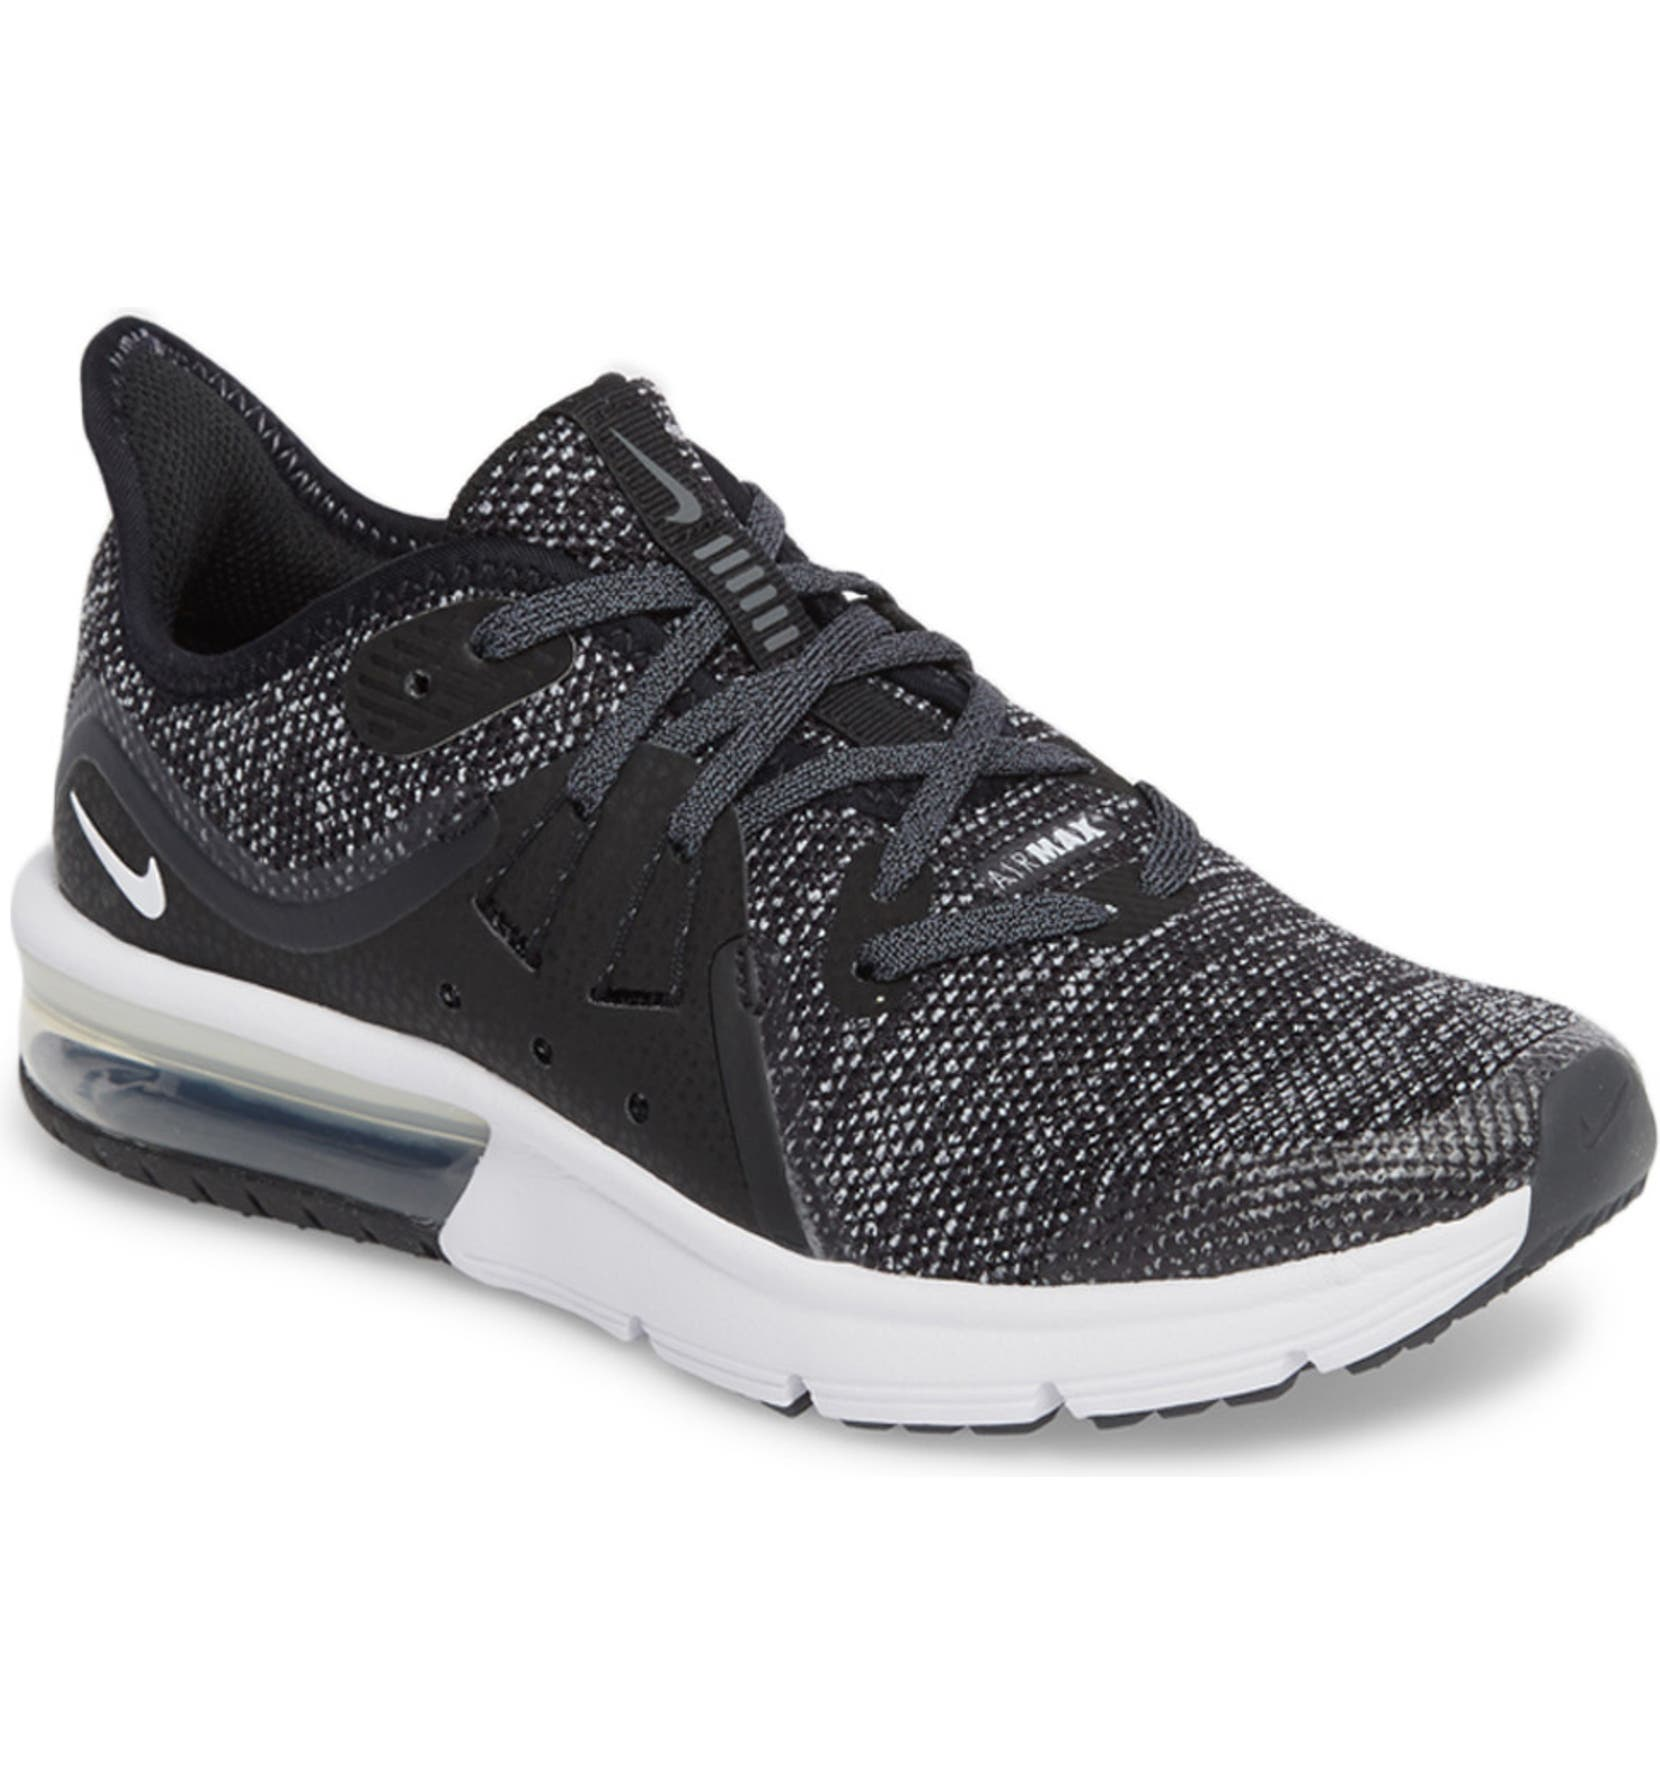 b2db4bf6d31cca Nike Air Max Sequent 3 GS Running Shoe (Toddler